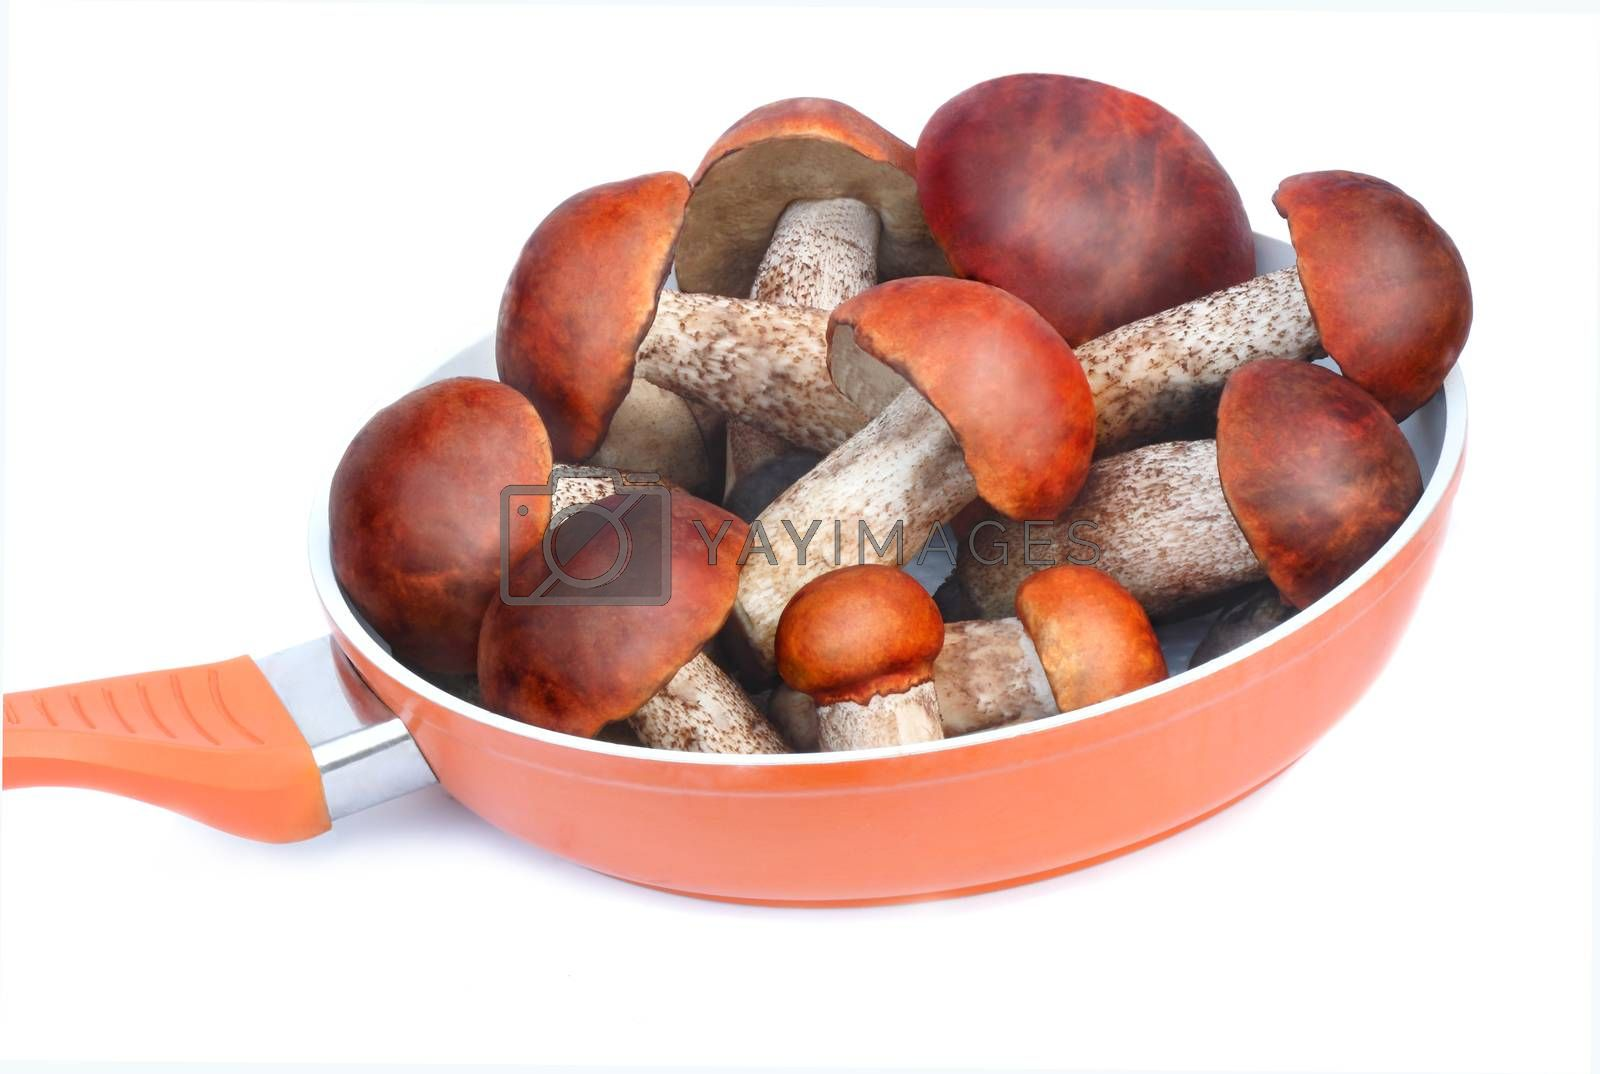 Strong, beautiful mushrooms, aspen mushrooms are in a frying pan for cooking. Presented on a white background.